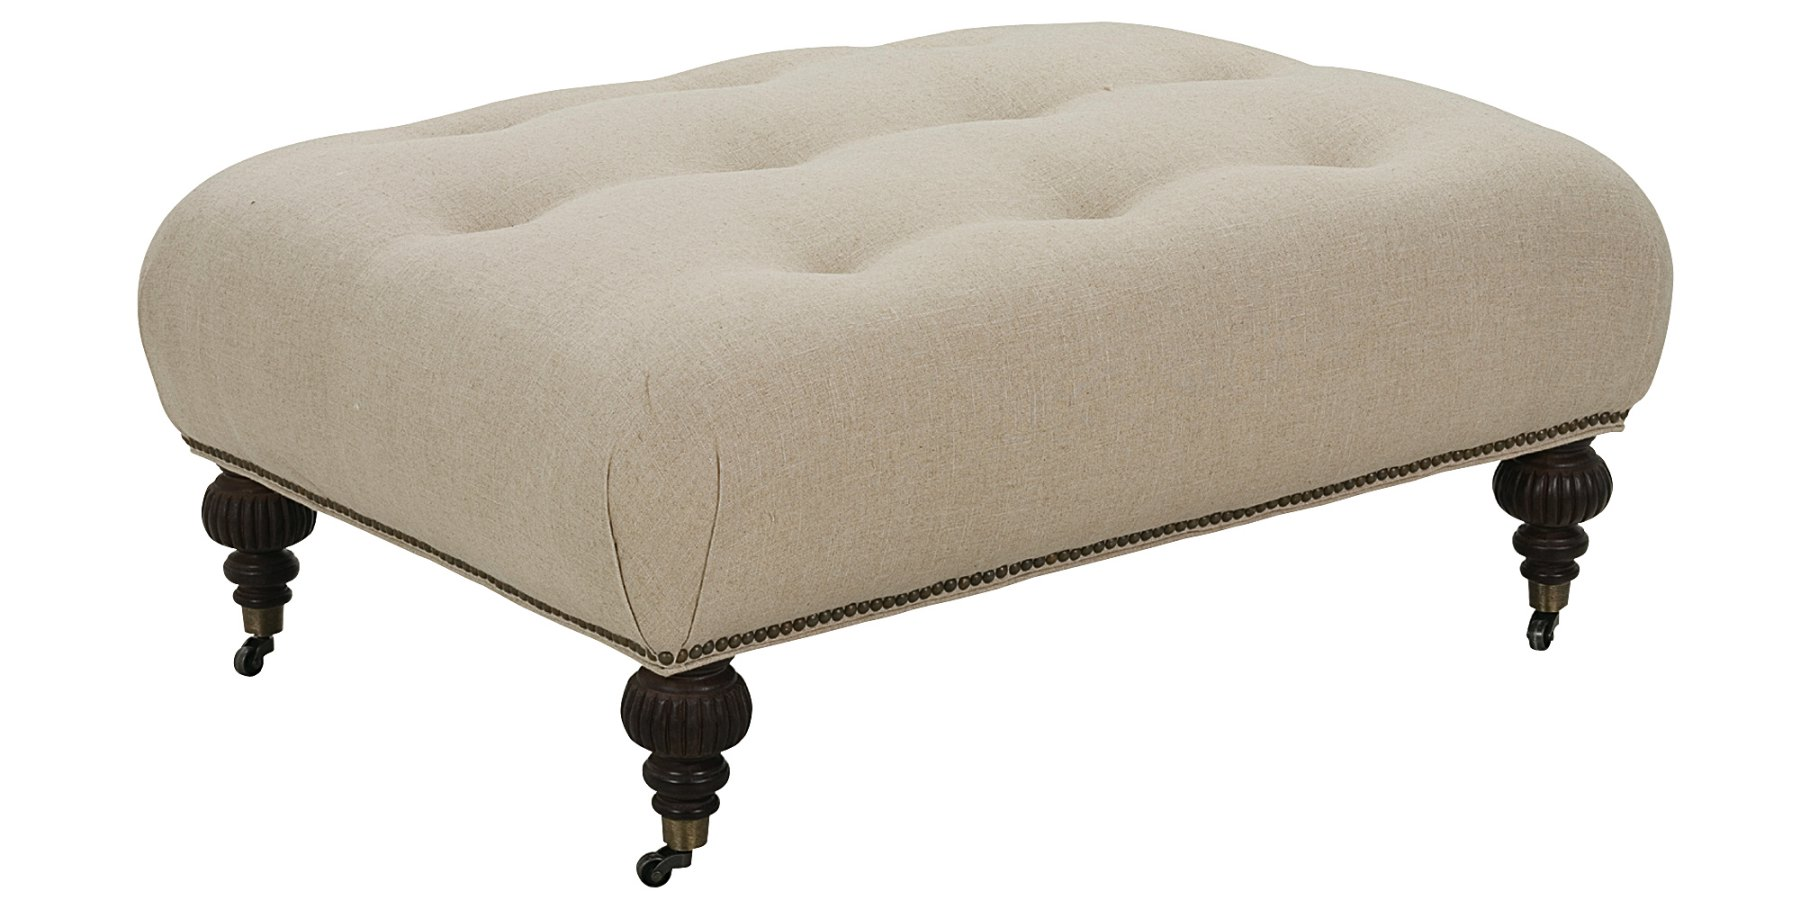 Fabric Oversized Ottoman With Tufting | Club Furniture